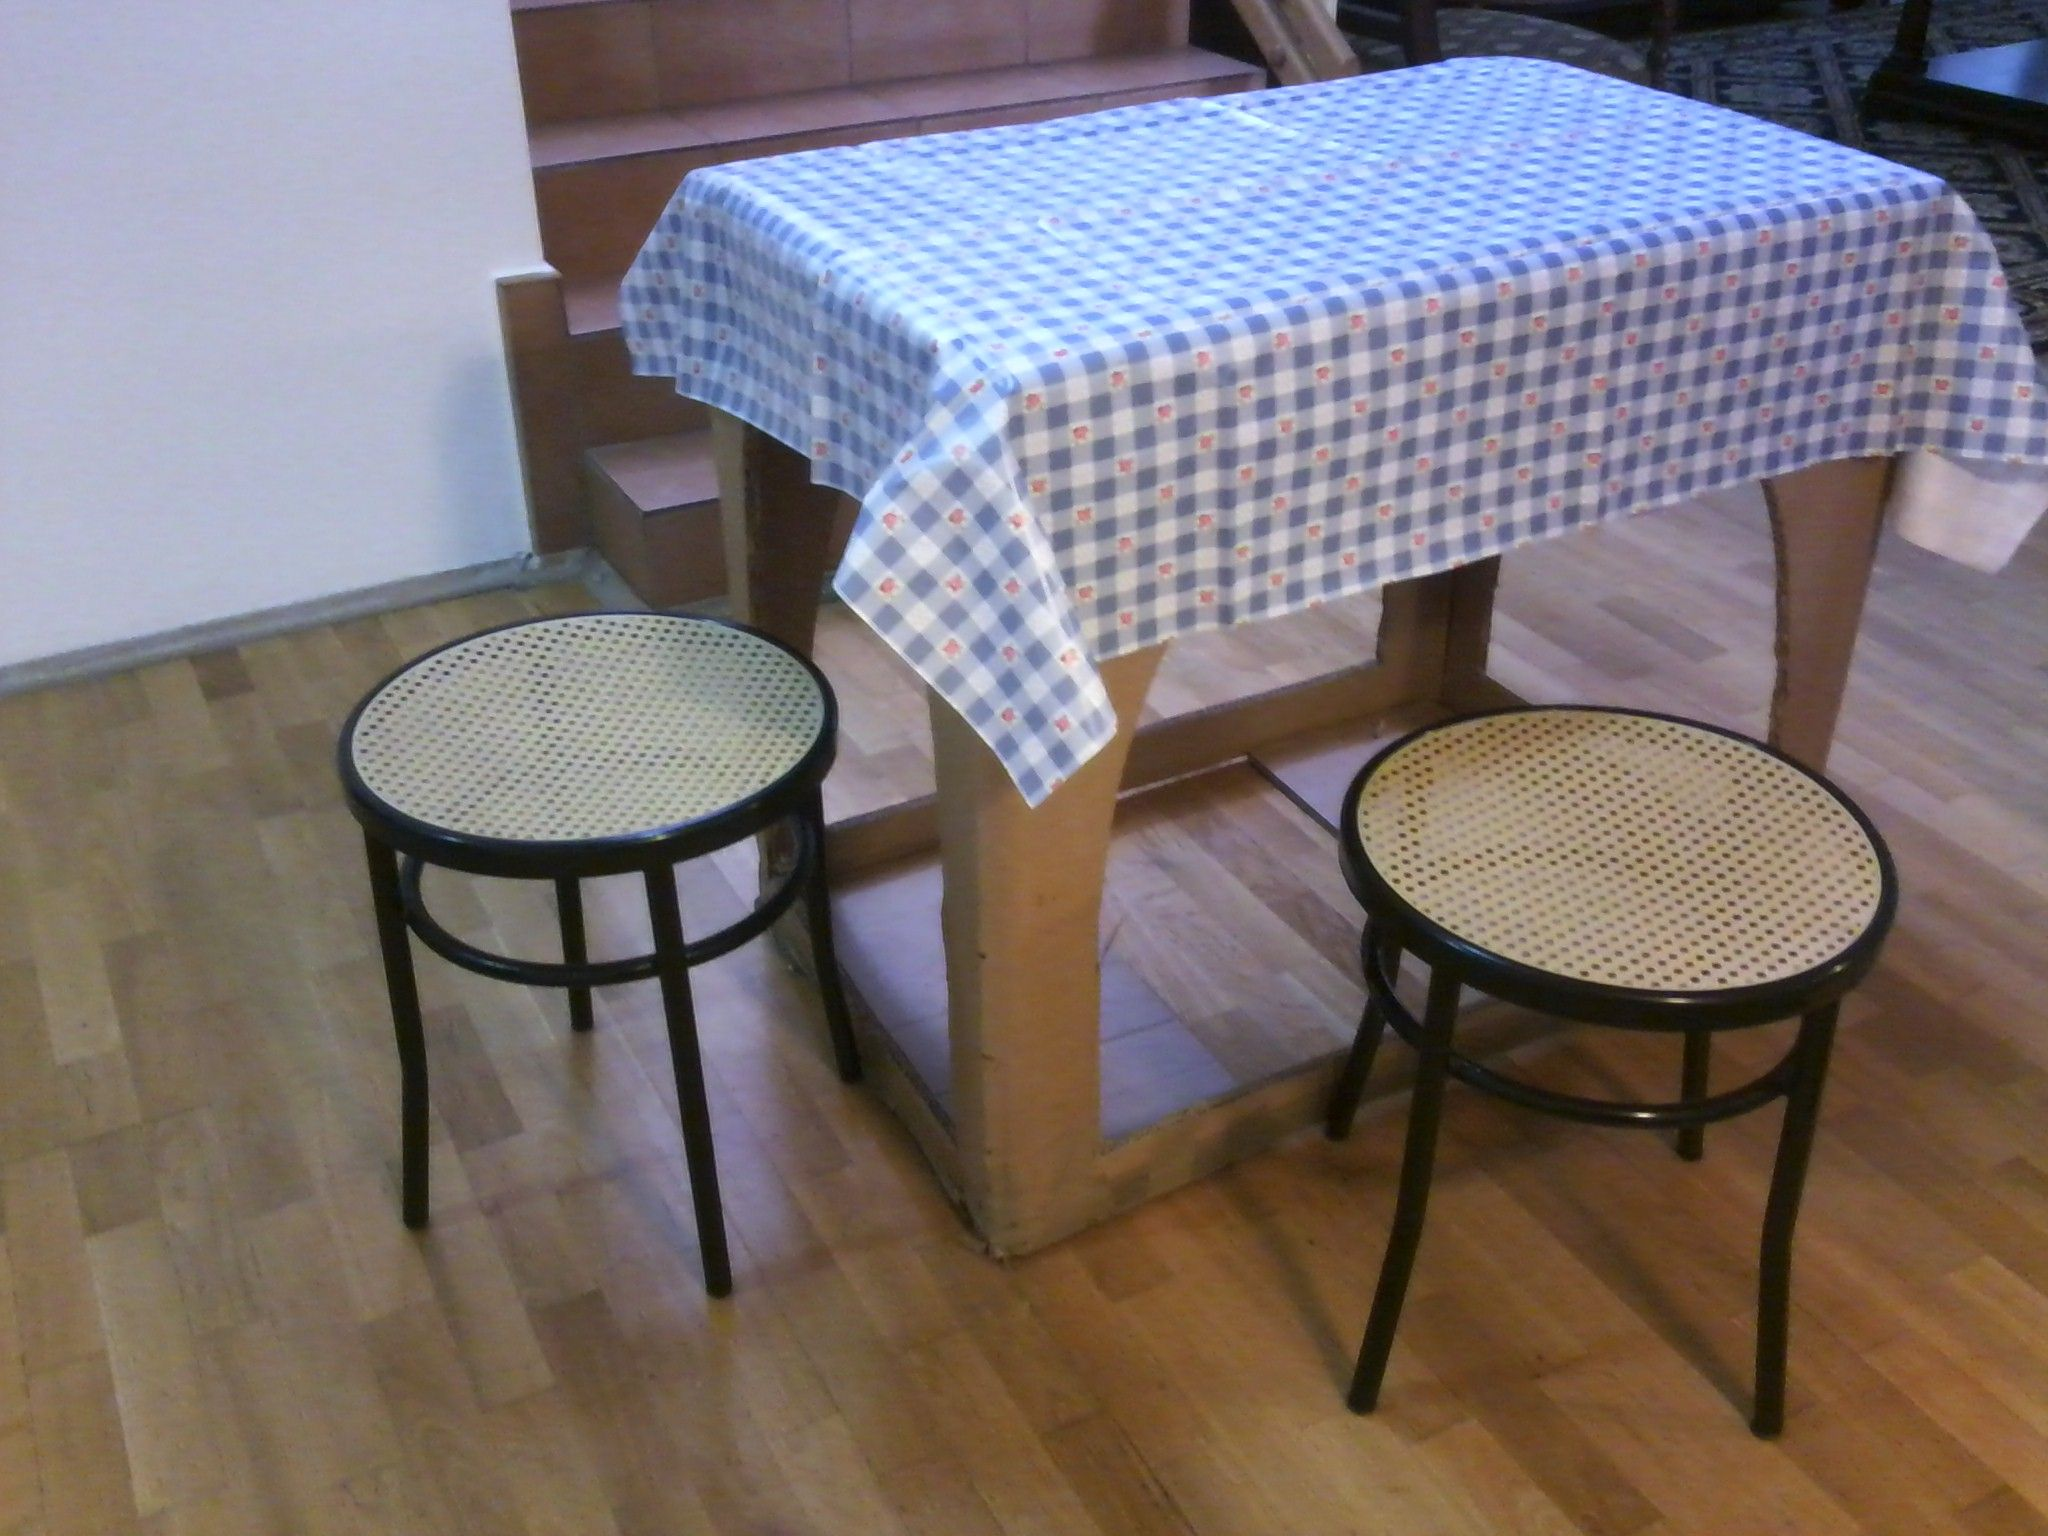 Table cloth and stools- voila. Packing box to furniture, to use until the actual furniture arrives.